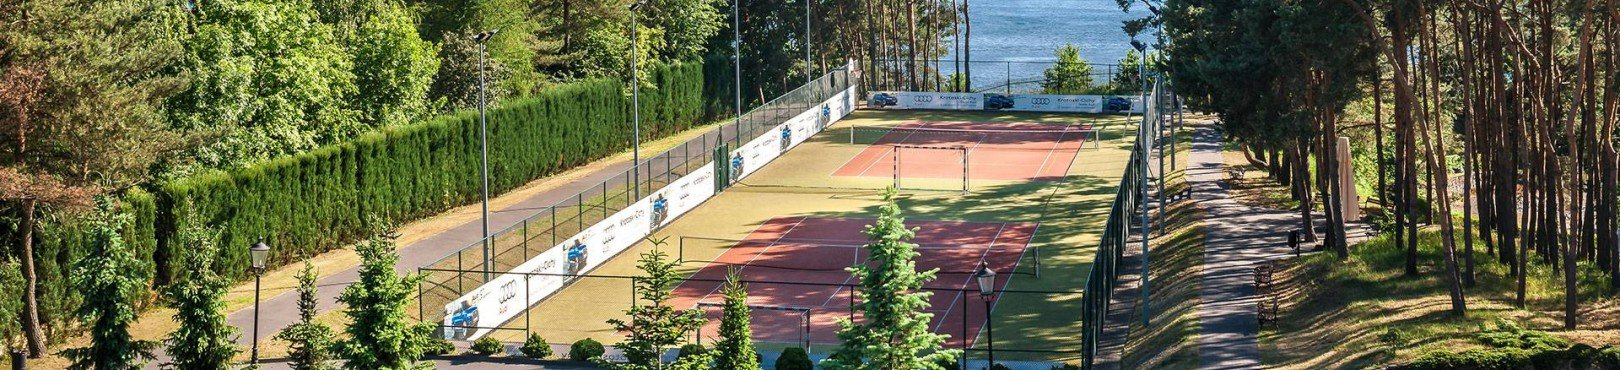 <h4><a href='/en/attractions/courts' >COURTS</a></h4><div class='item-intro'>The courts for the 'white sport' could never be missing among the fields of our Hotel. Here everyone can feel like Novak Djokovic or Maria Sharapova, even if for just an hour or two. 